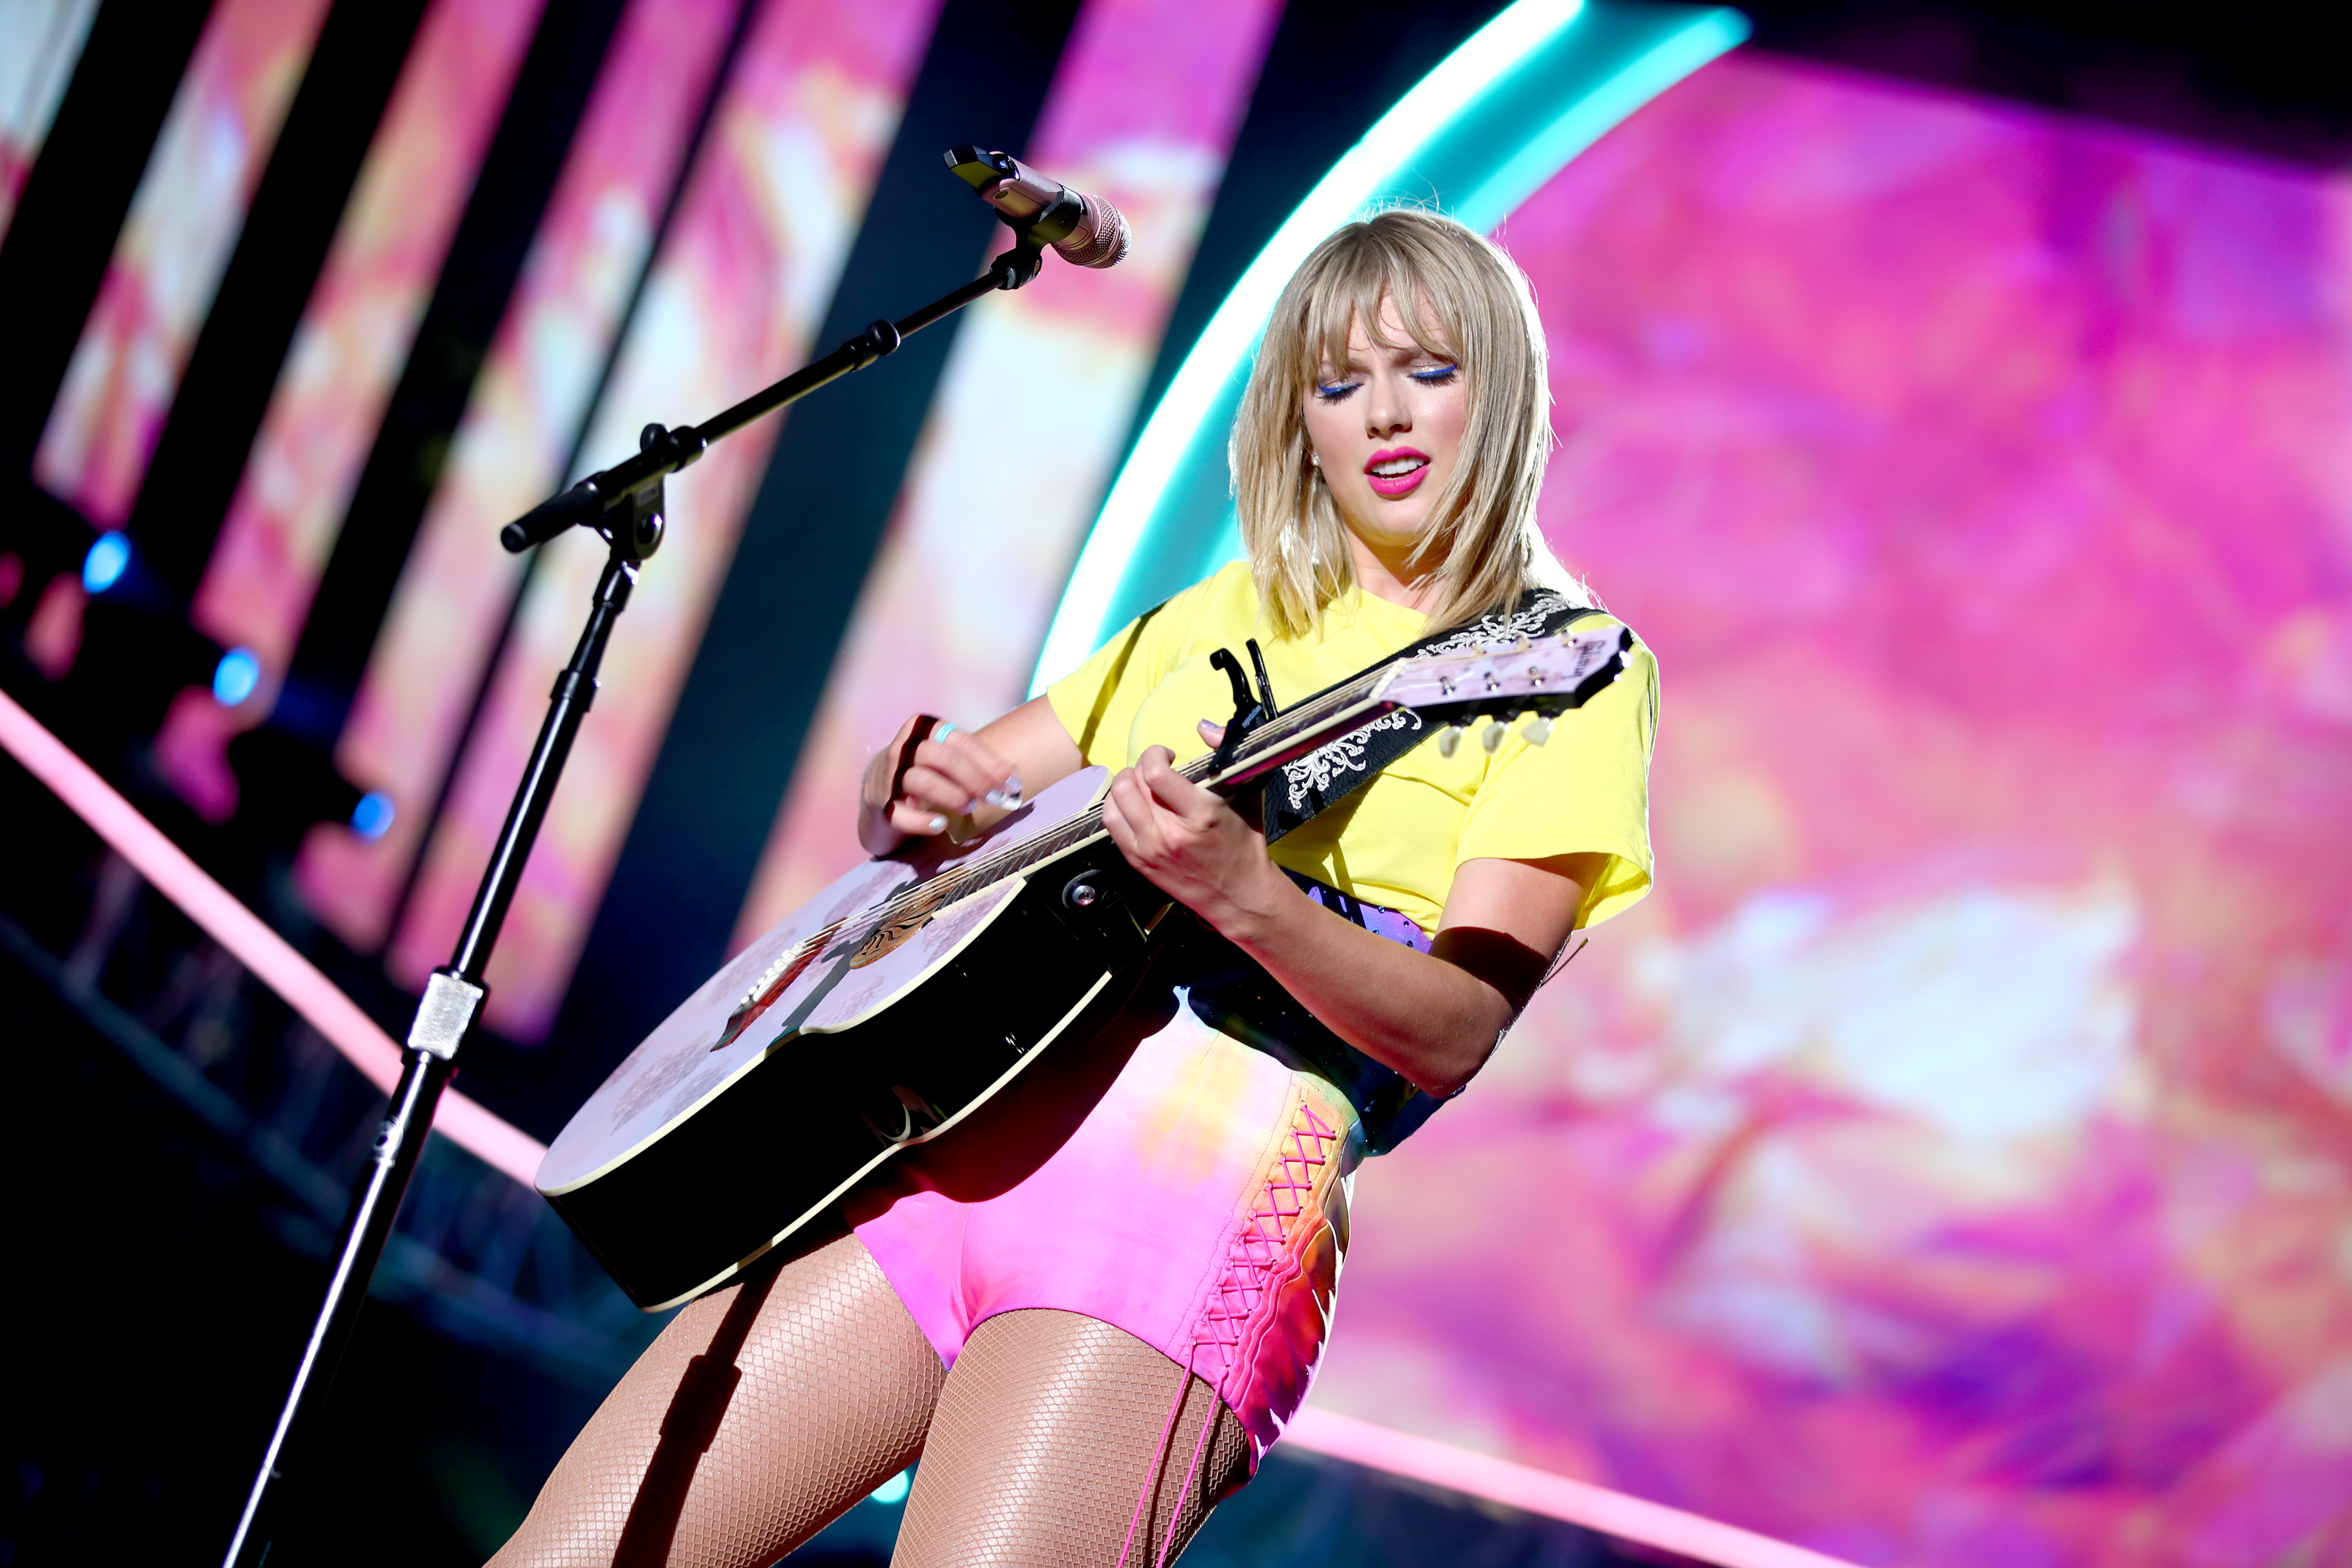 Taylor Swift Concert How To Live Stream On Amazon Free Money